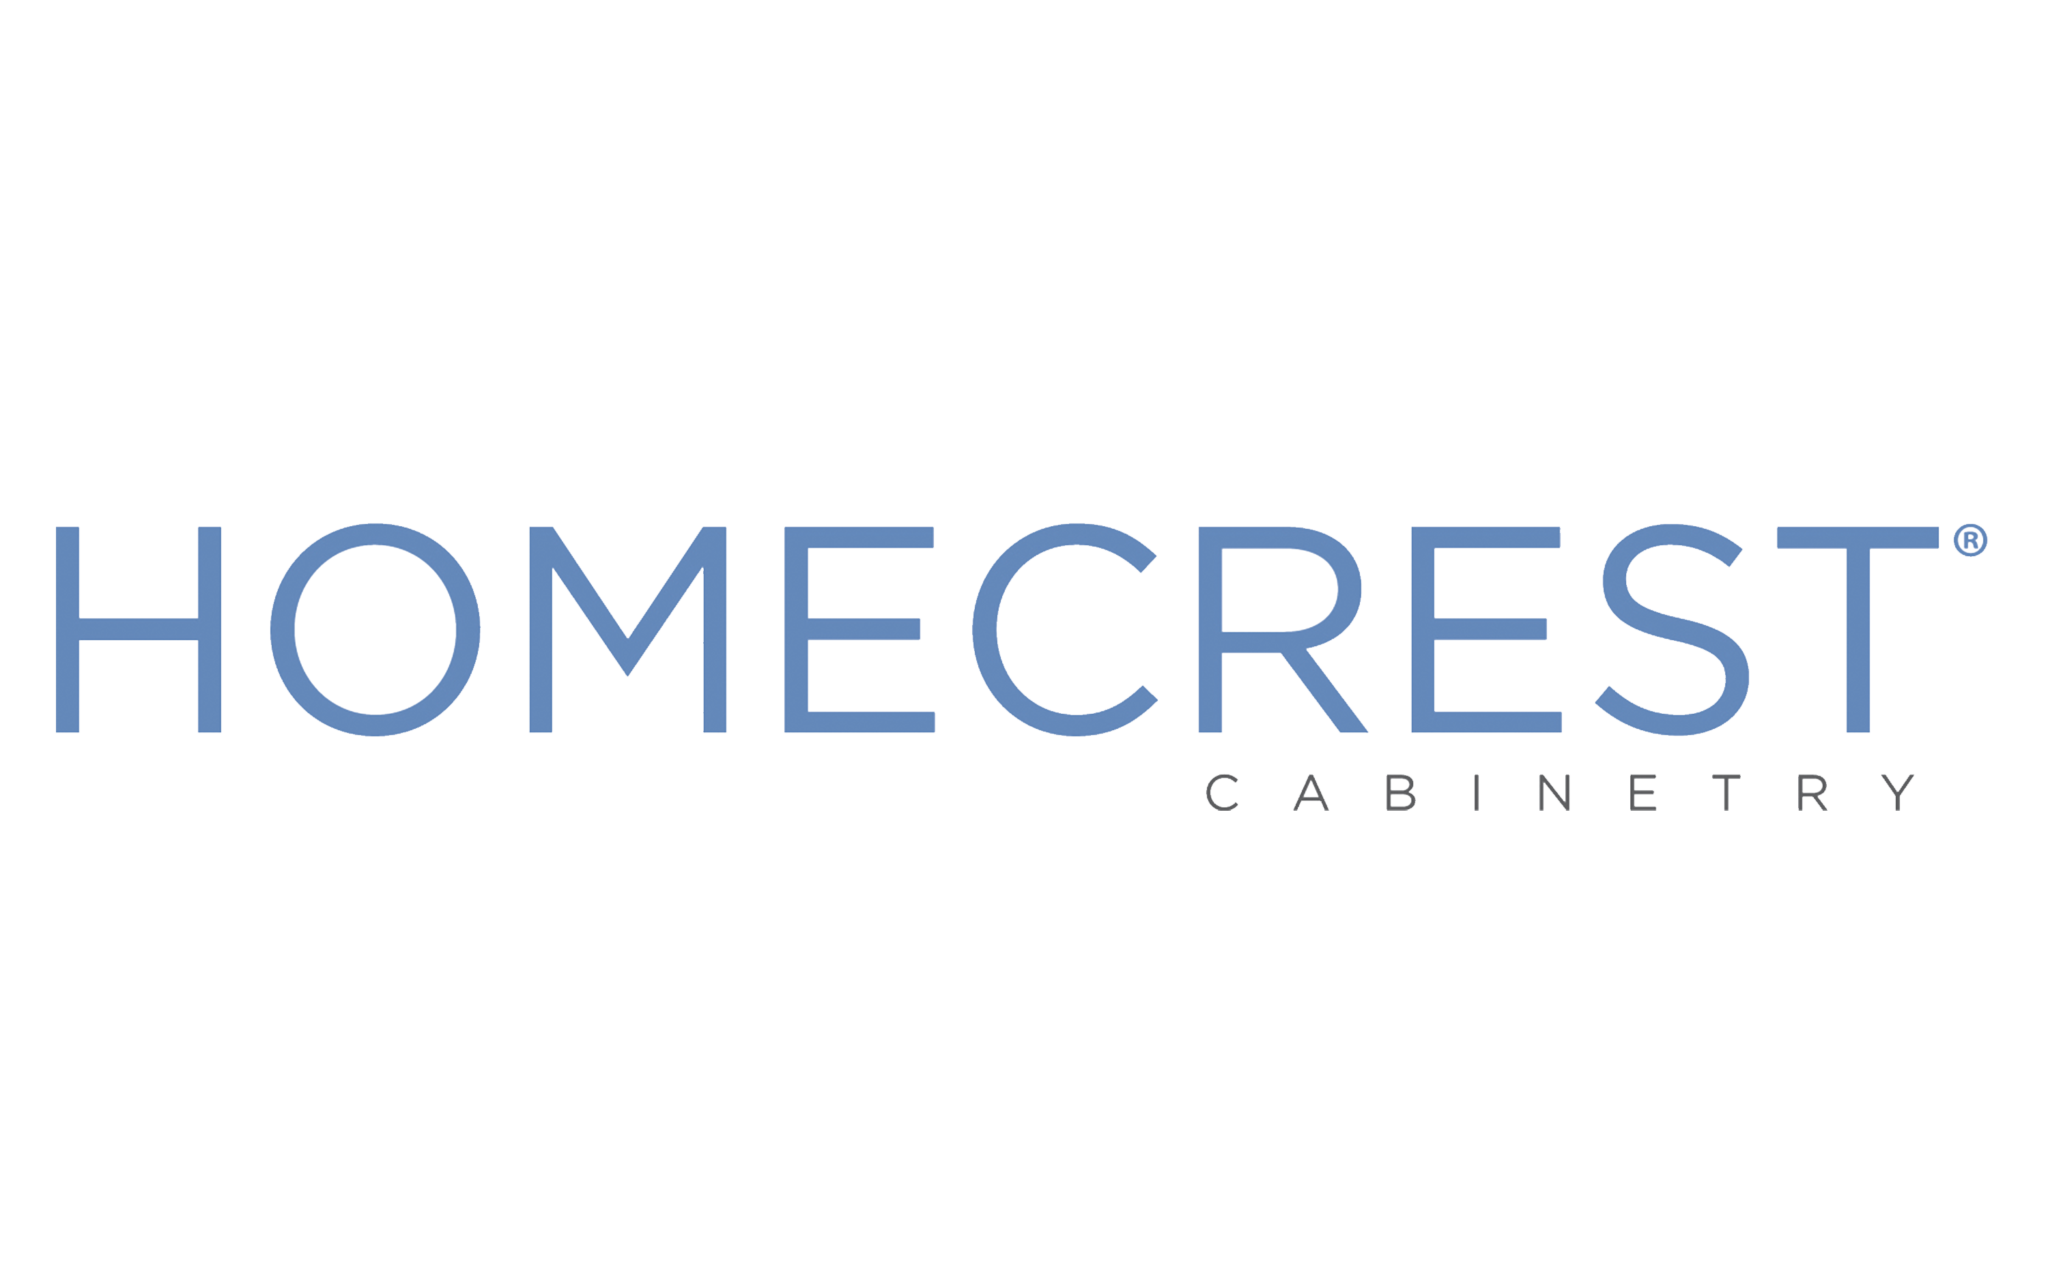 homecrest cabinetry logo